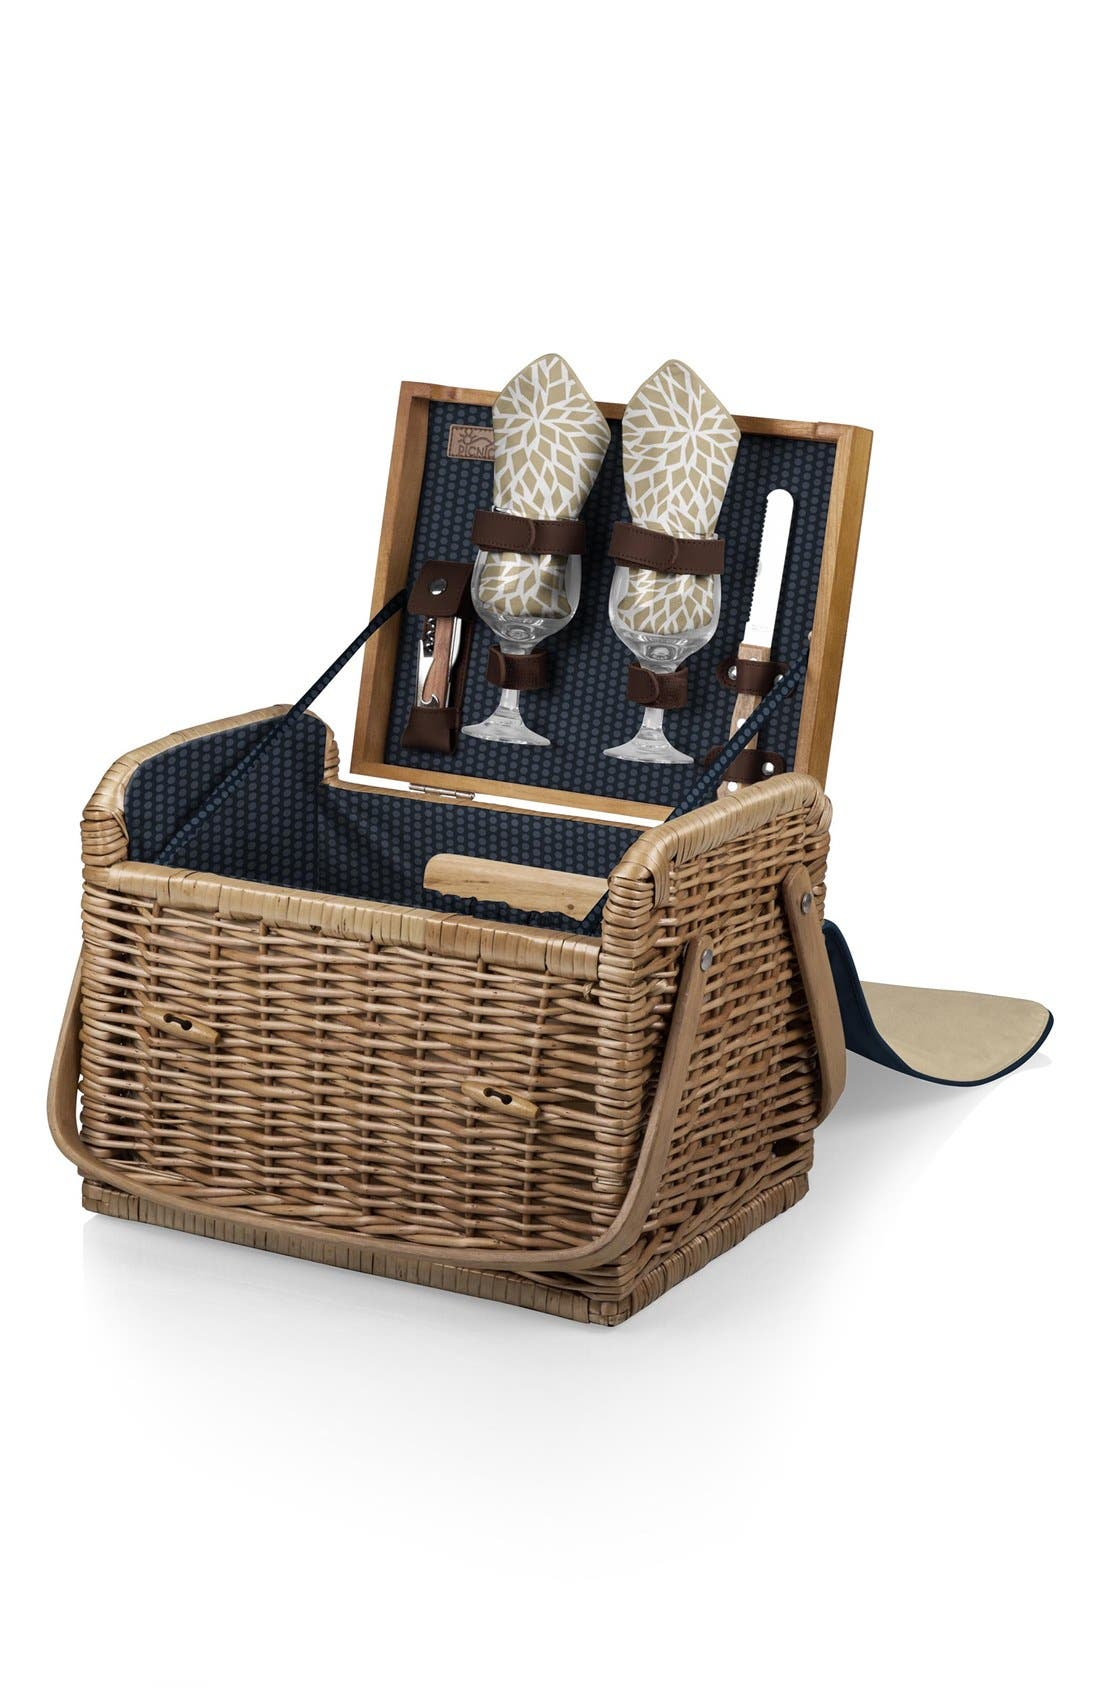 Alternate Image 1 Selected - Picnic Time 'Kabrio' Wine & Cheese Picnic Basket